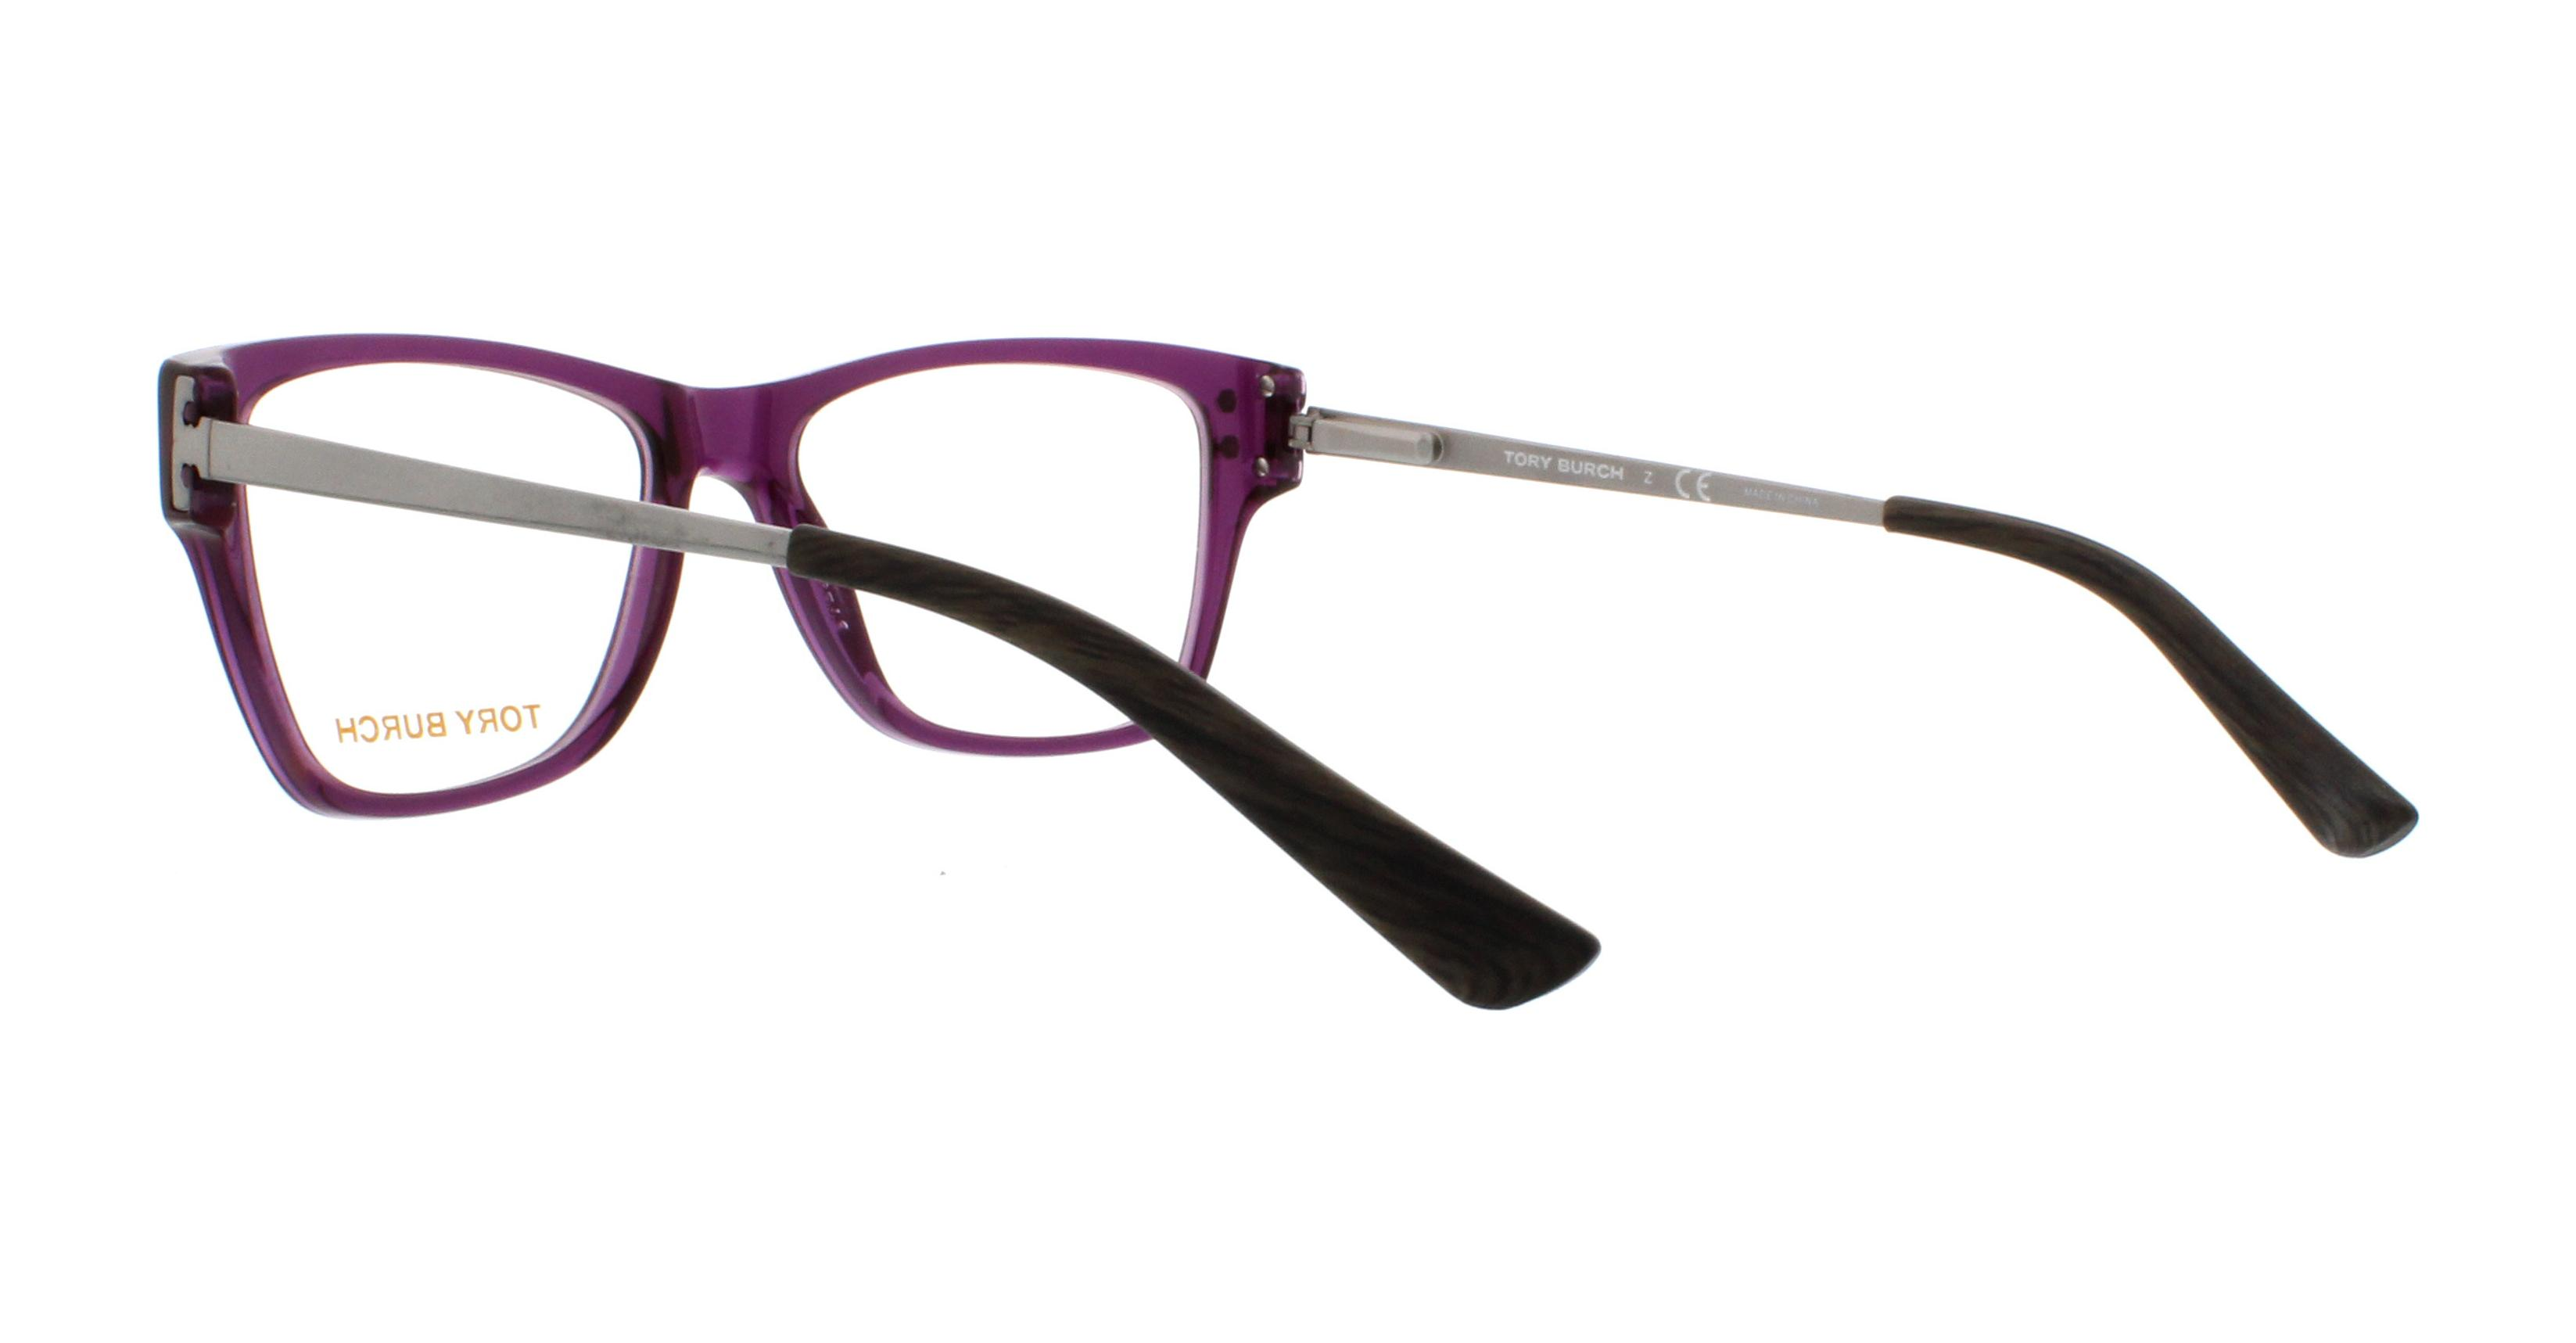 769537aa9b1 Designer Frames Outlet. Tory Burch TY2036